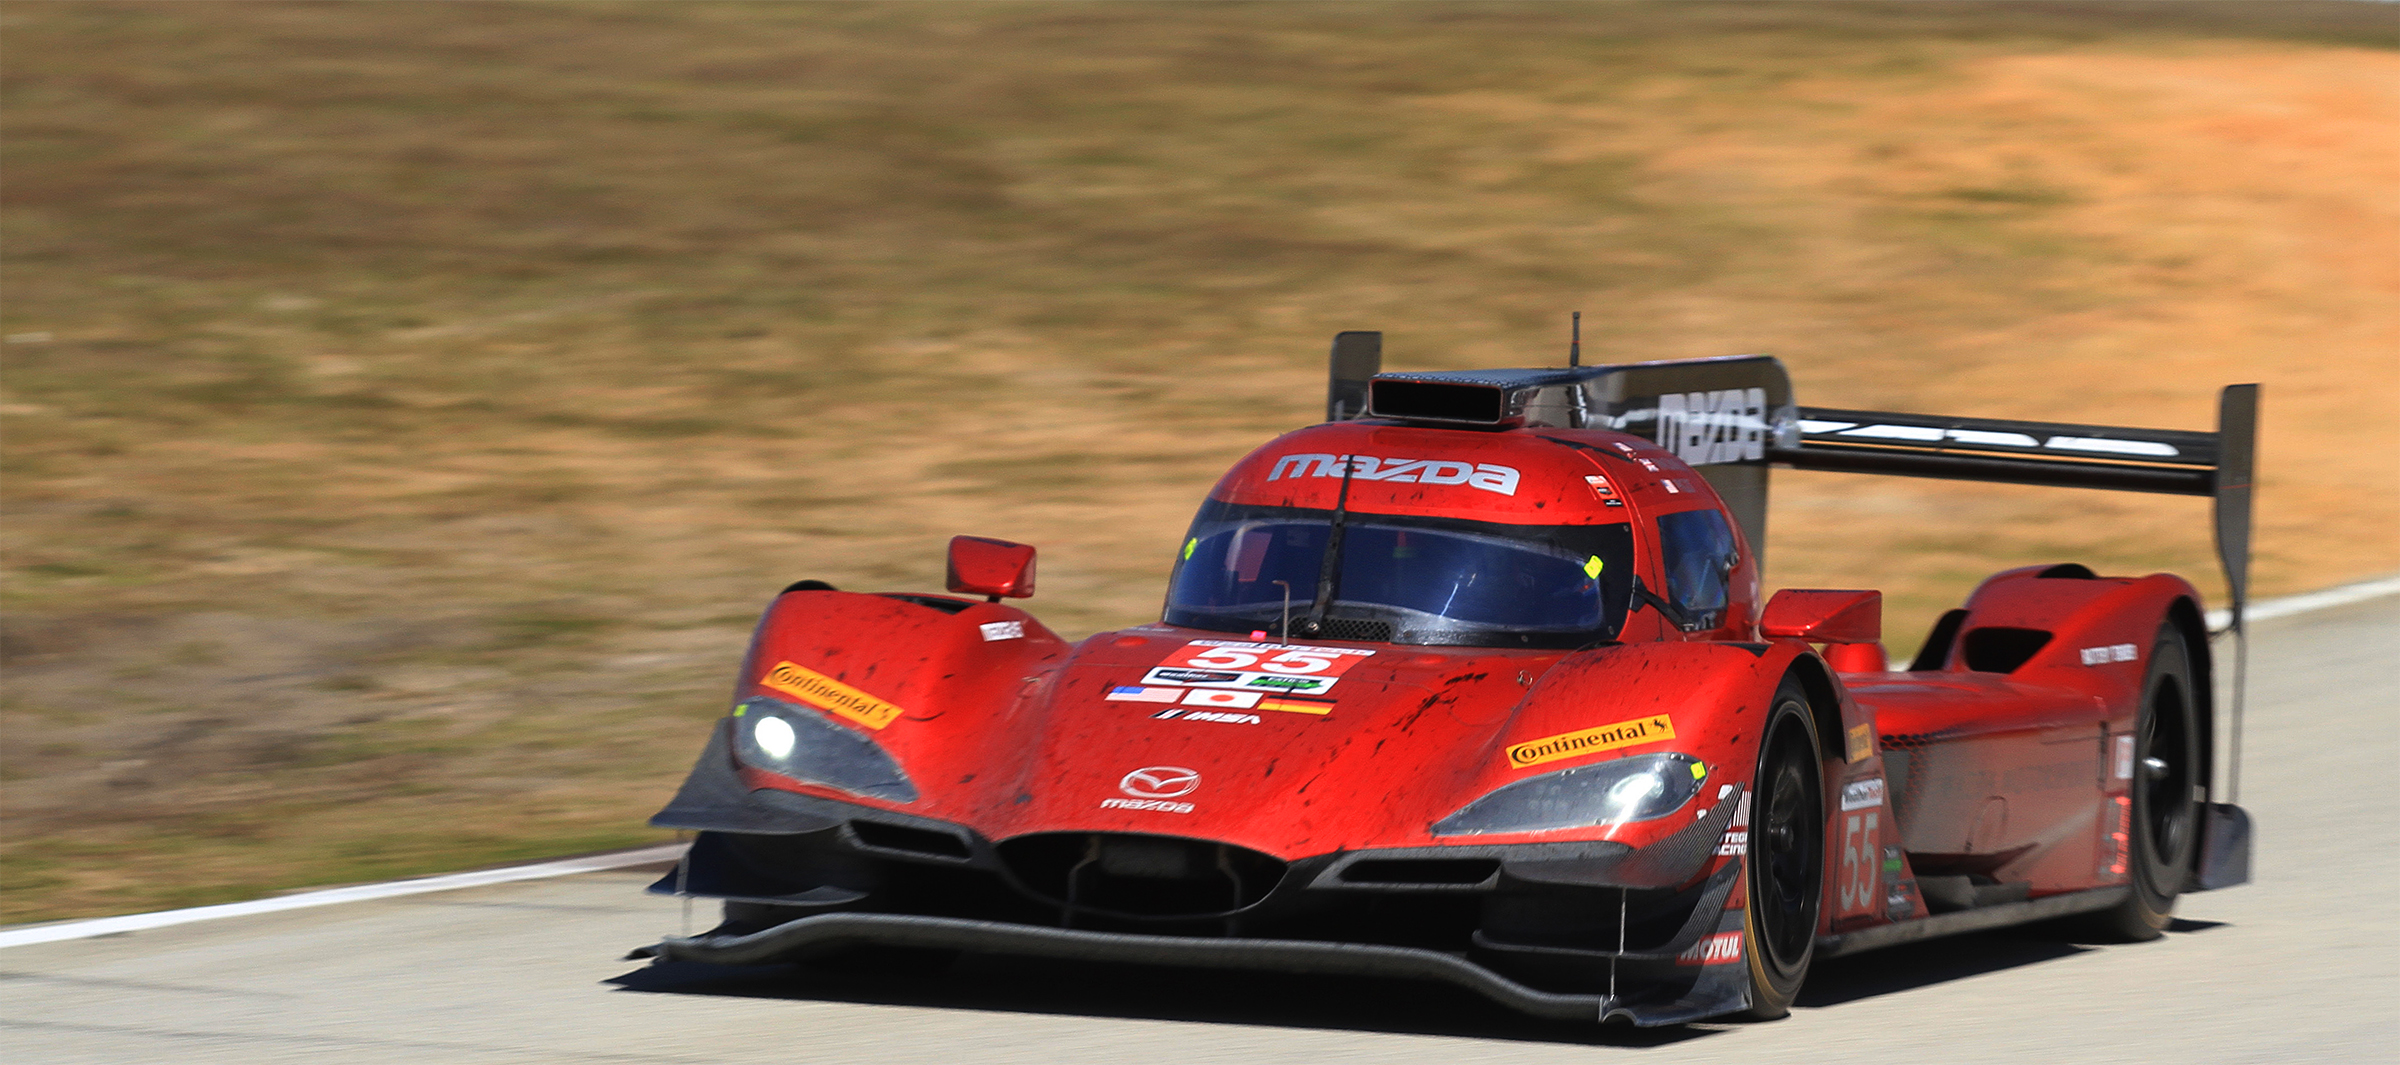 The #55 Mazda driven by Jonathan Bomarito, Spencer Pigot, and Harry Tincknell finished sixth but very nearly finished on the podium with a good chance at the top step. (Chris Jasurek/Epoch Times)